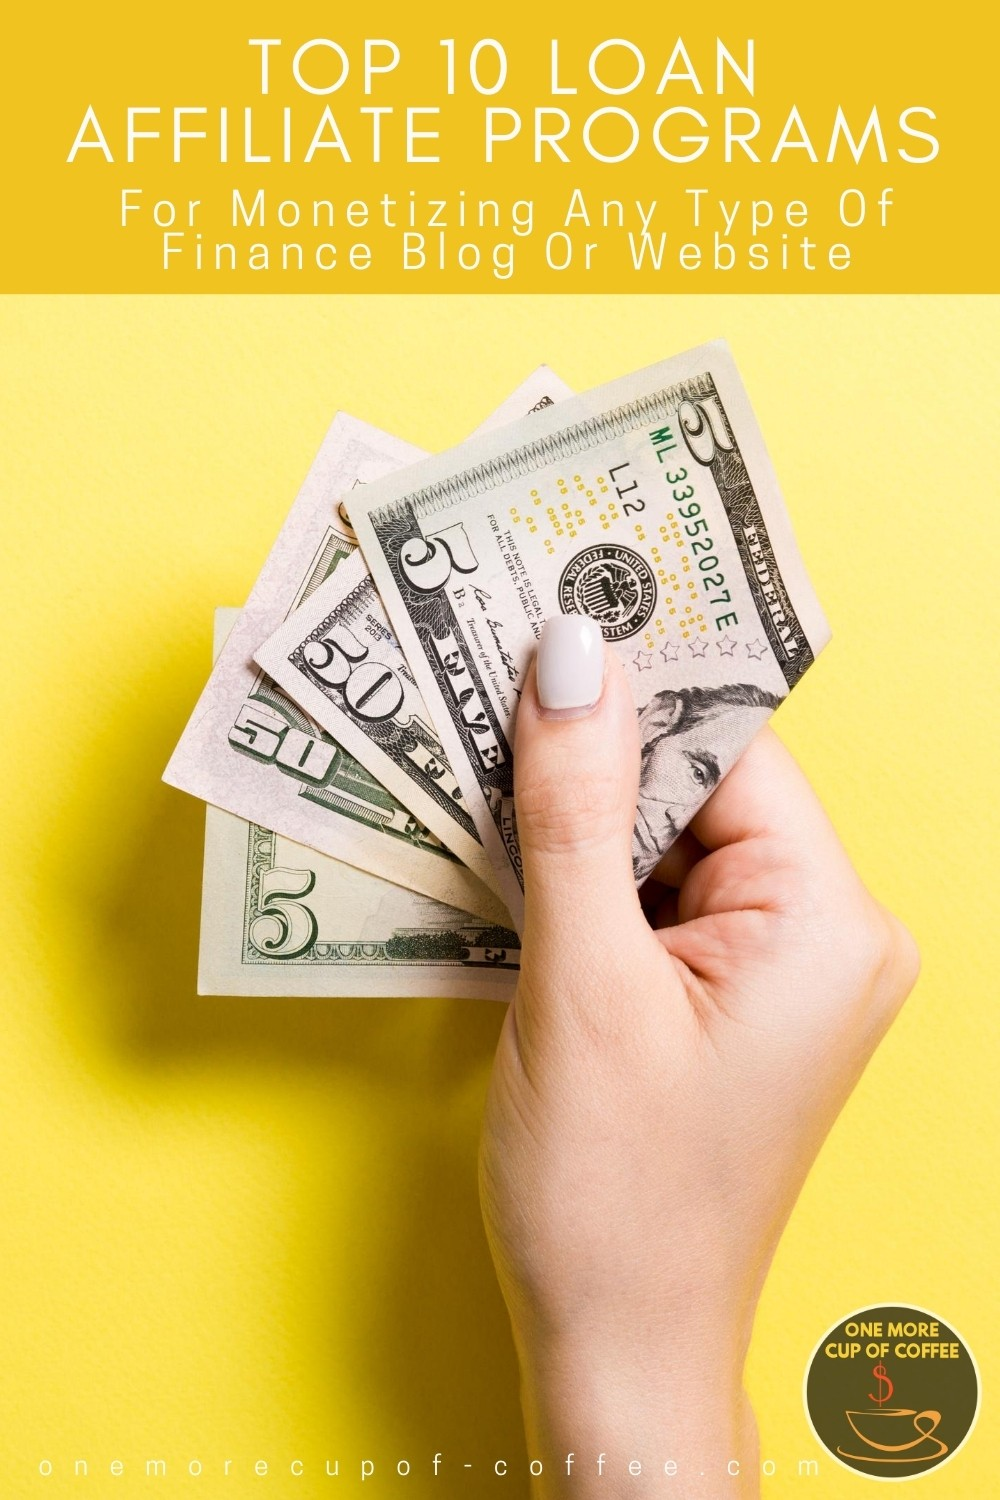 """closeup image of hand holding folded dollar bills against a yellow background, with text overlay """"Top 10 Loan Affiliate Programs For Monetizing Any Type Of Finance Blog Or Website"""""""